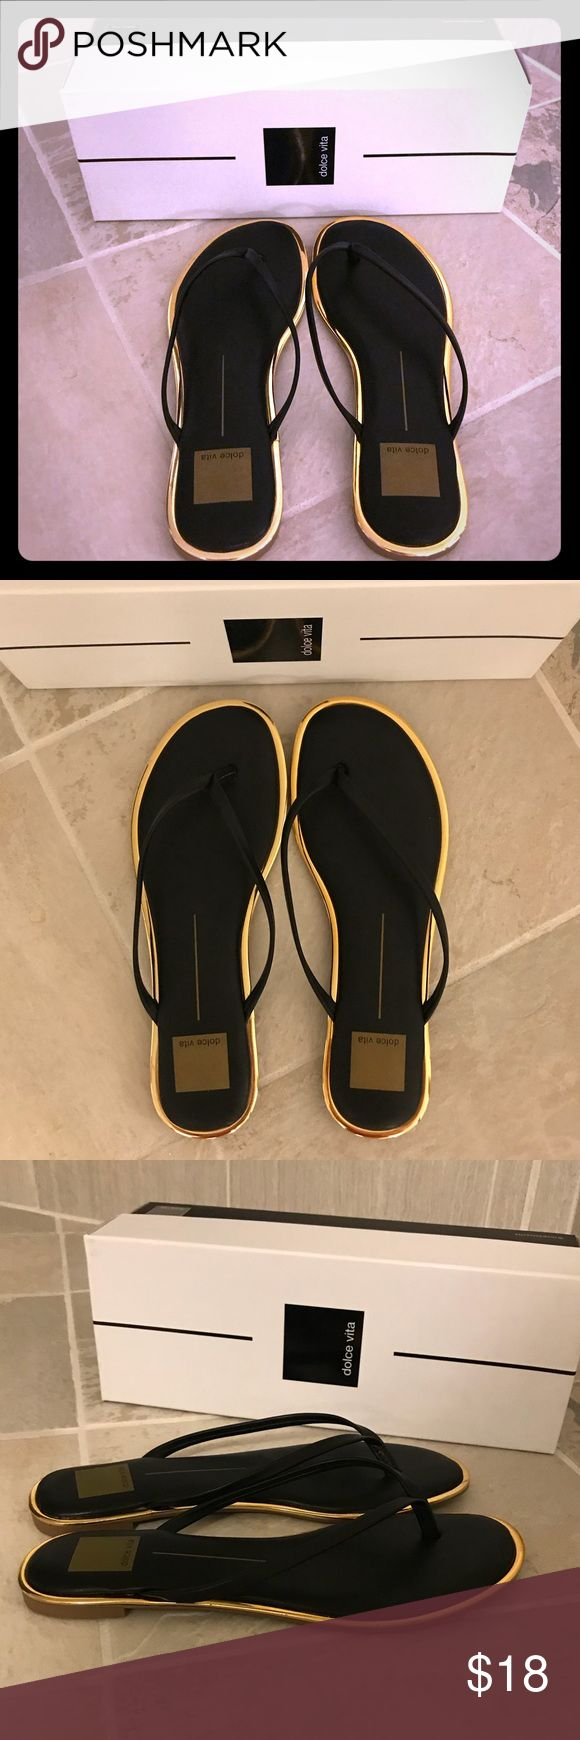 NWT Dolce vita black leather gold flip flops Women's sandals are brand new and unworn. No signs of any wear, flawless and includes box. Dolce Vita Shoes Sandals